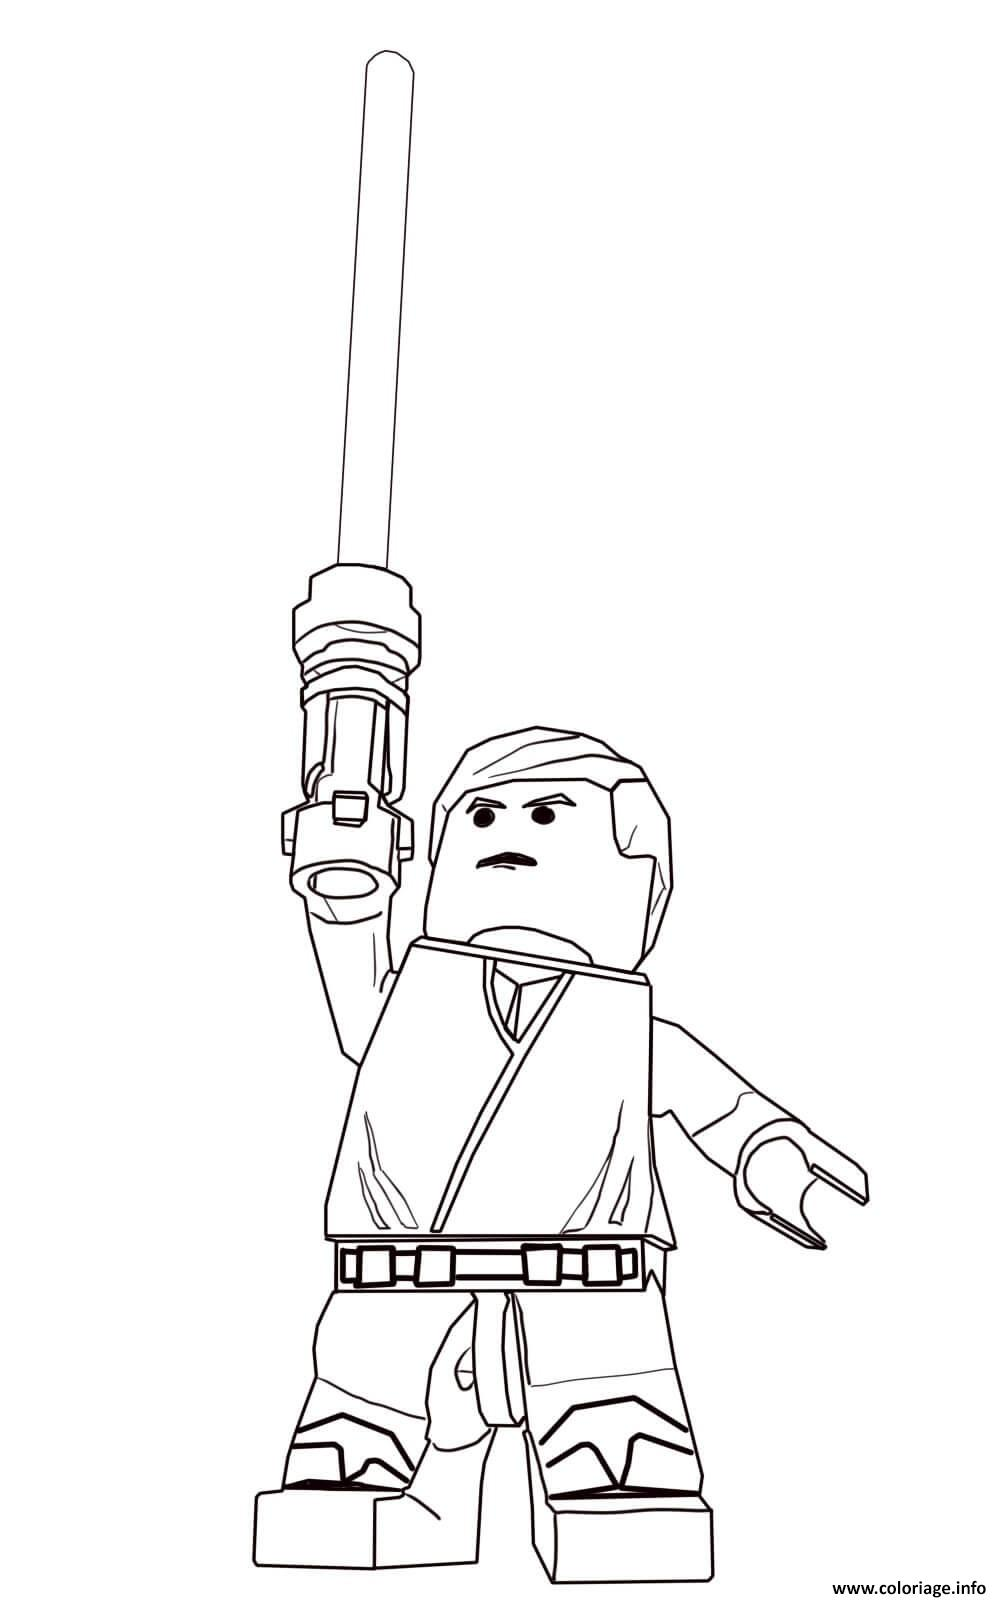 Coloriage lego star wars luke skywalker dessin - Dessin a imprimer de star ...